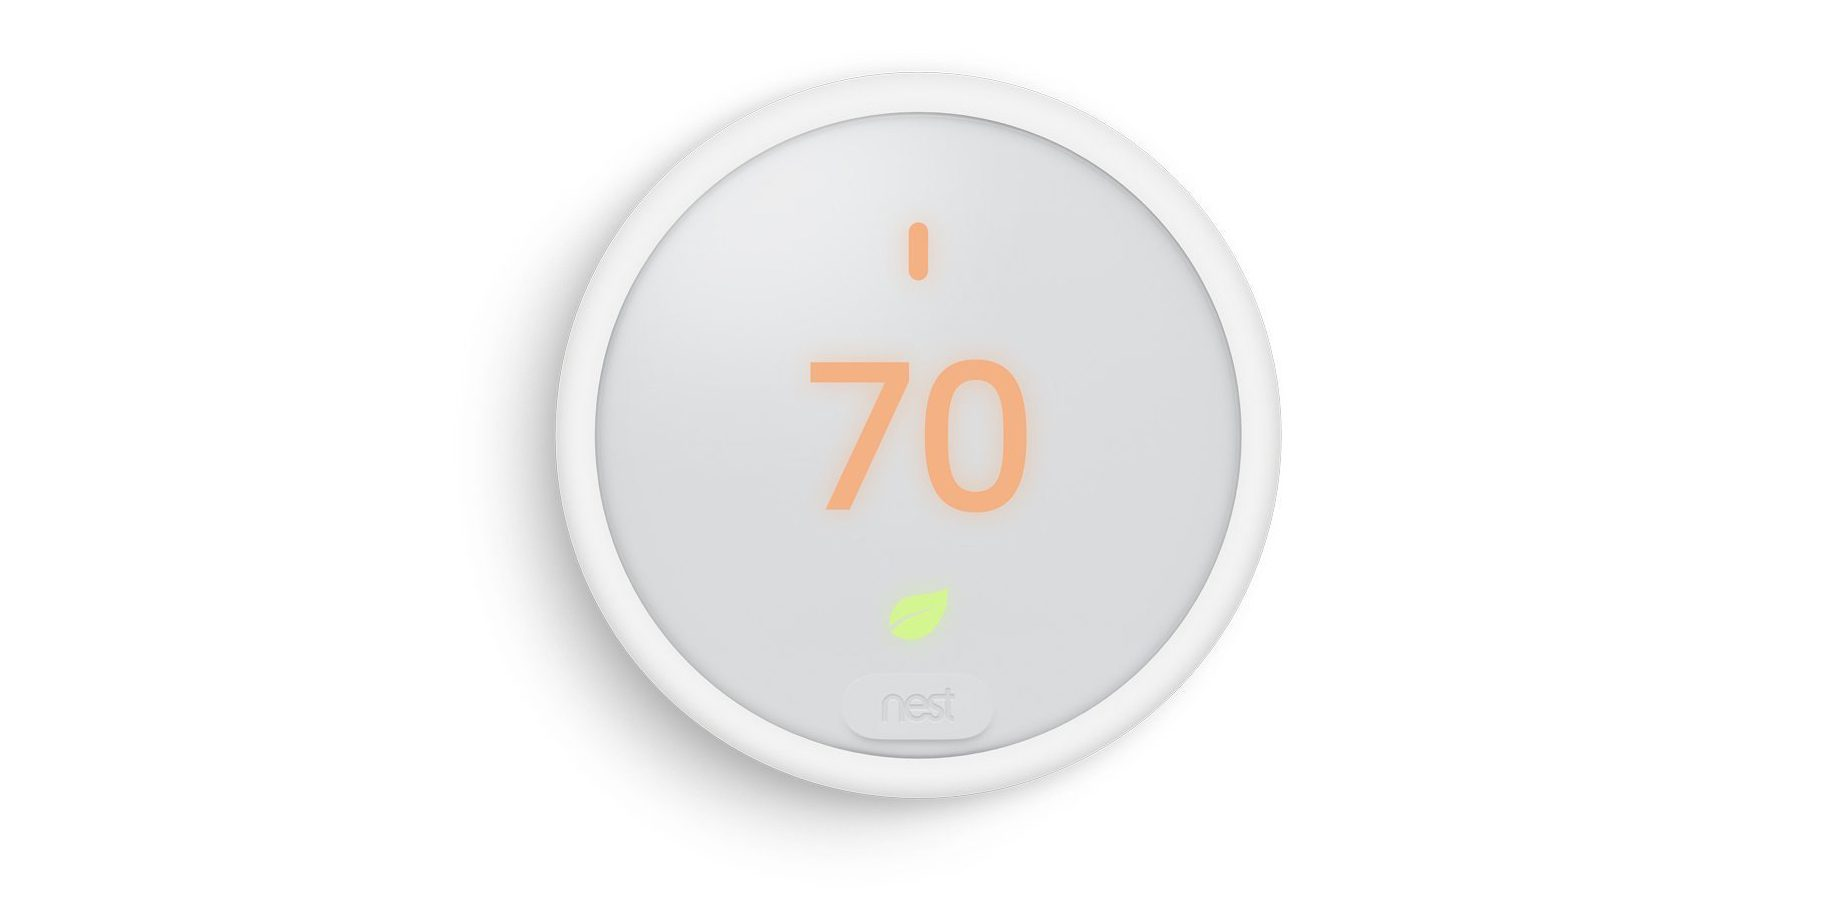 Add Nest Thermostat E to your home for $136 (Reg. $169), more in today's Green Deals - Electrek